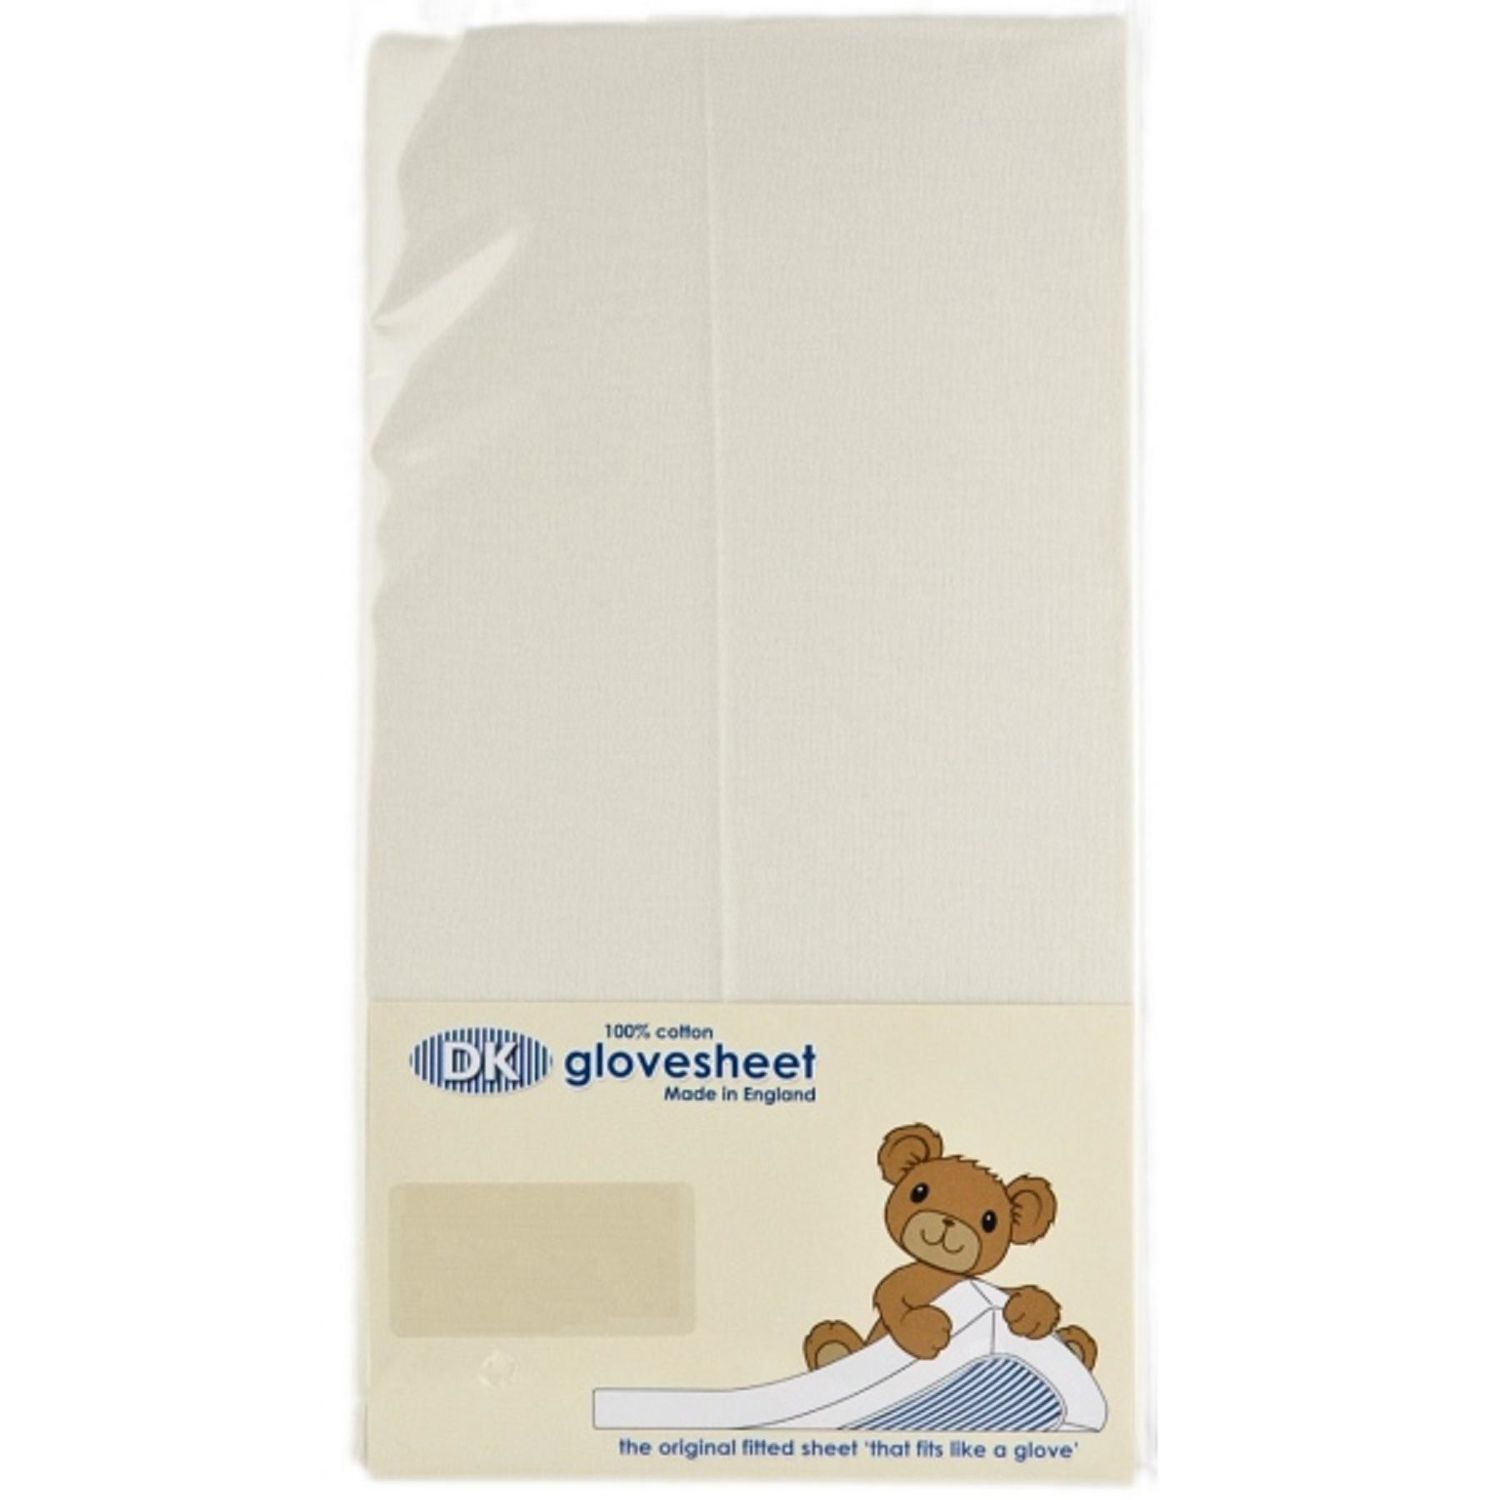 DK Glovesheet Pram Crib Flat Sheet Cream 100% Cotton Made In UK 75x100cm